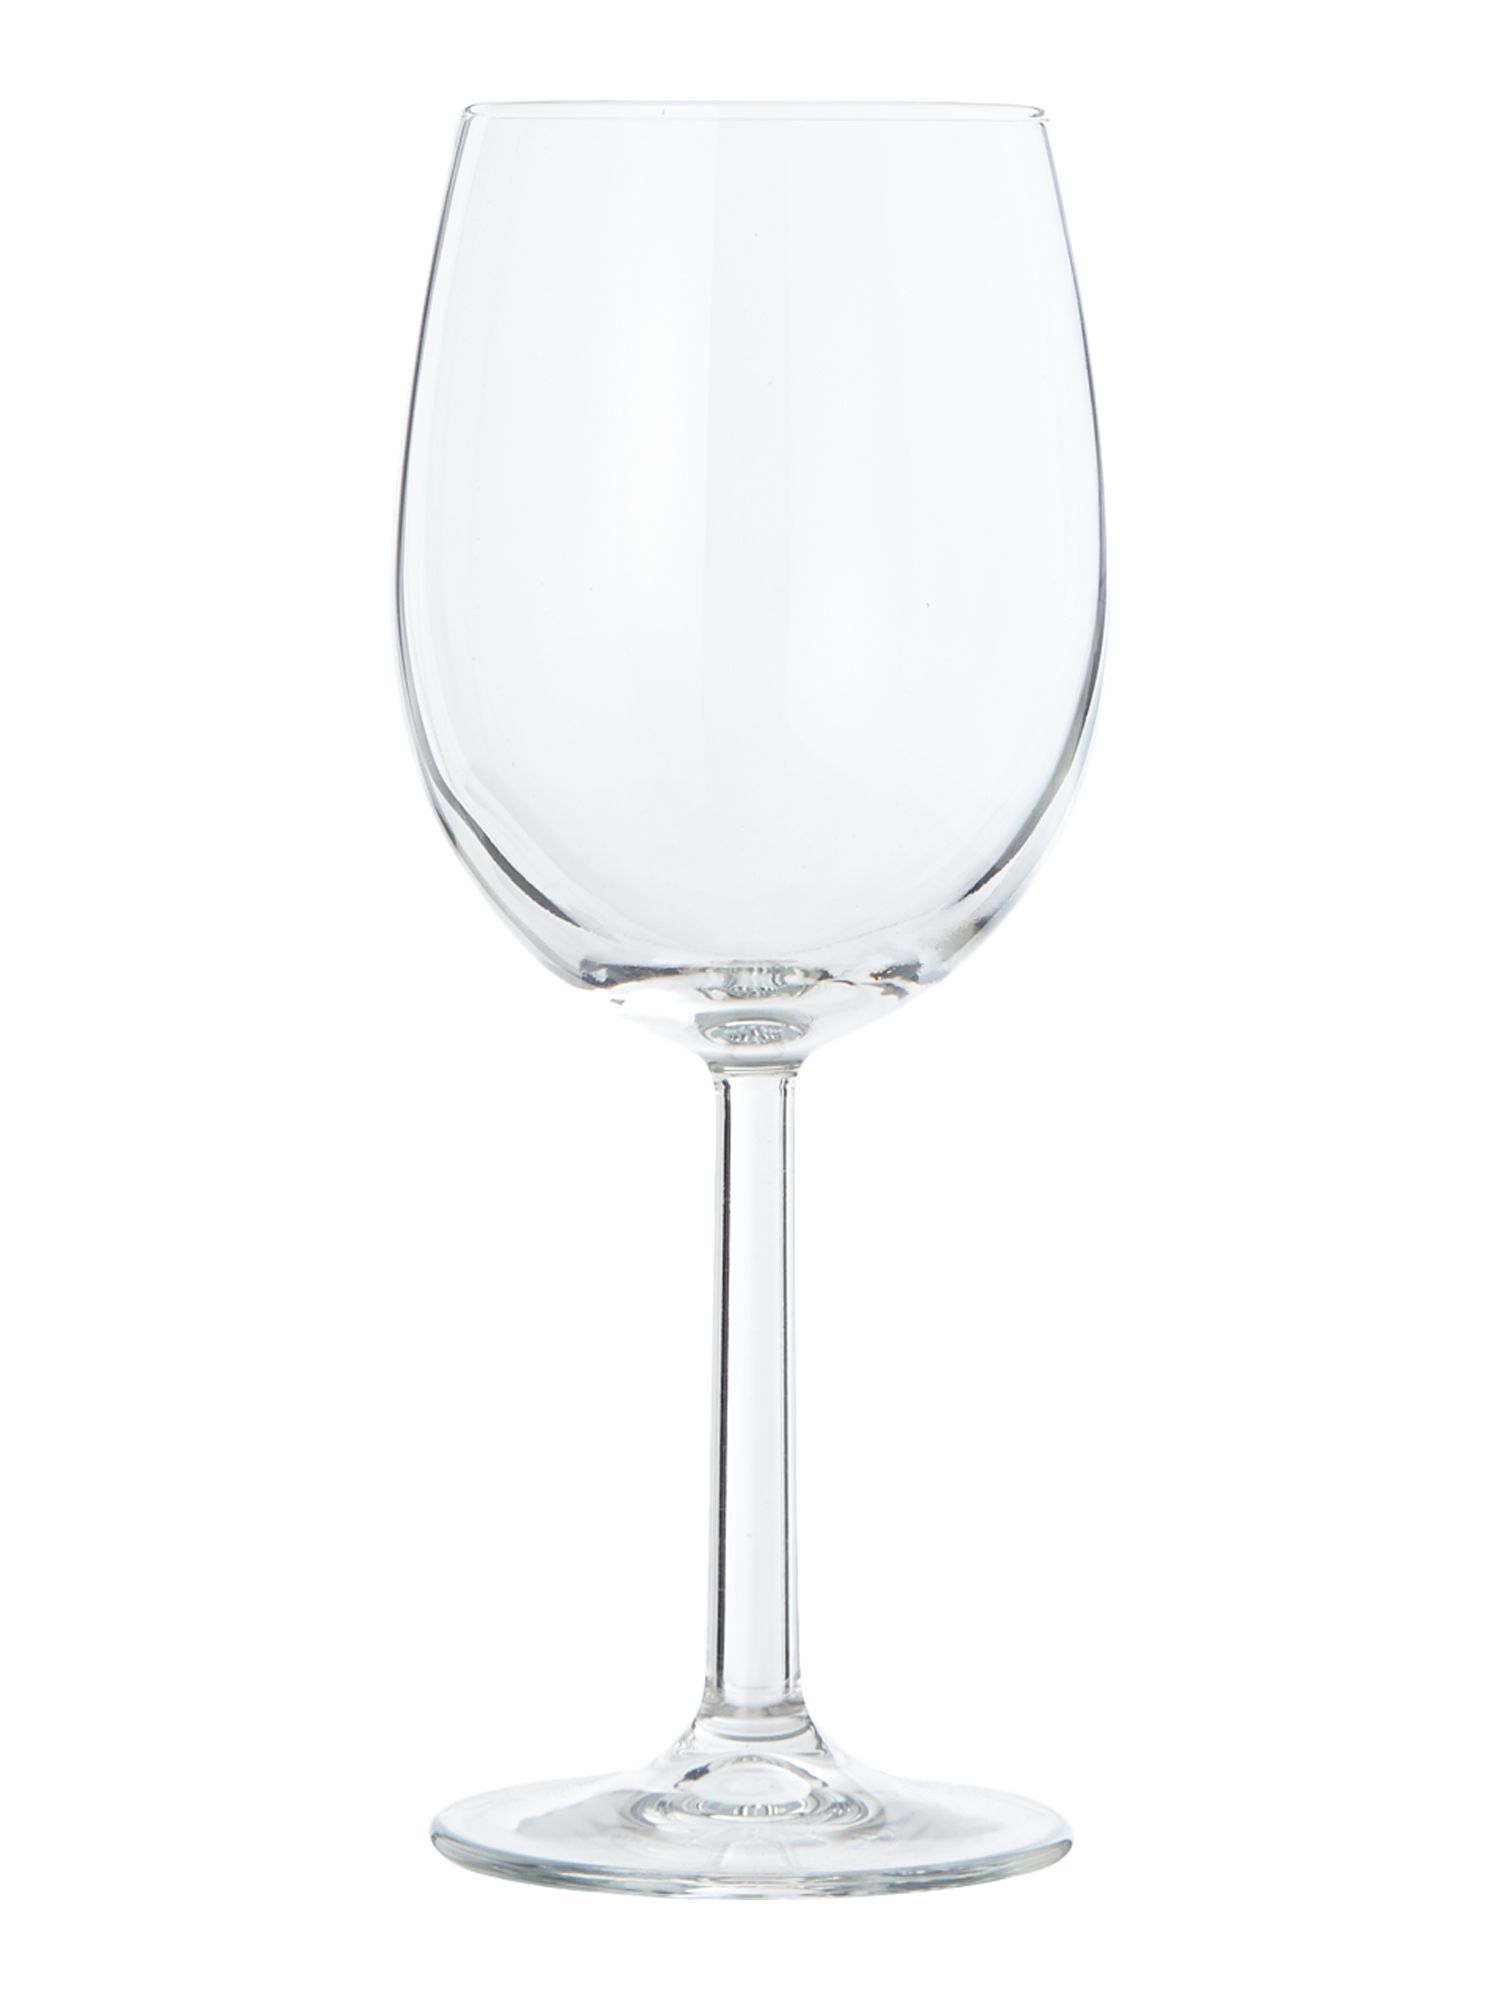 Cuvee wine glass 400ml set of 6